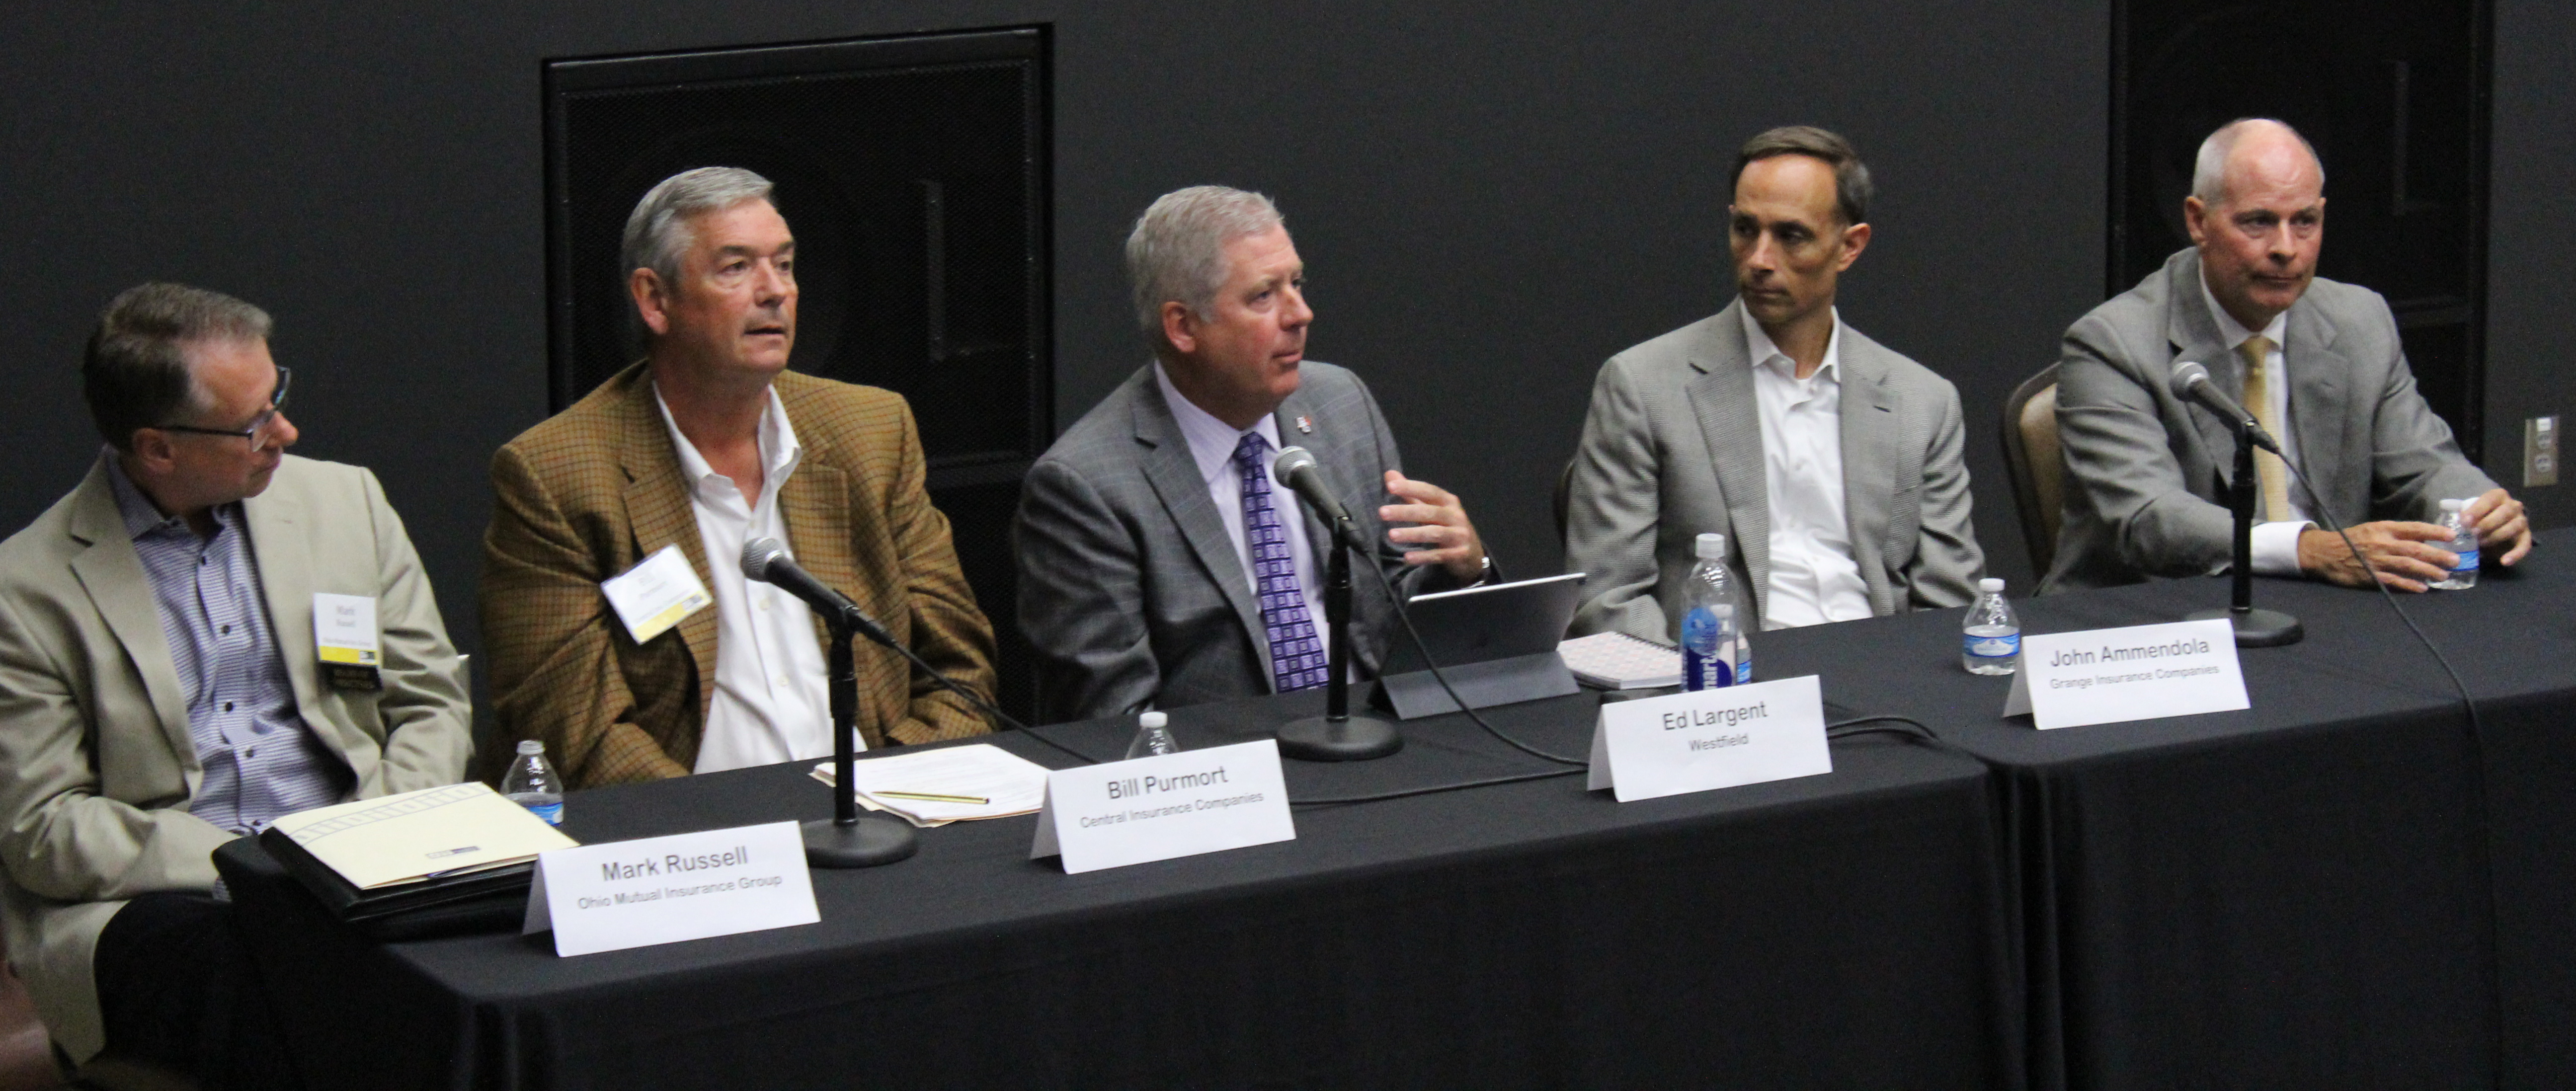 Hot Topics, Including Hurricane Florence Impacts, Discussed at Insurance Symposium